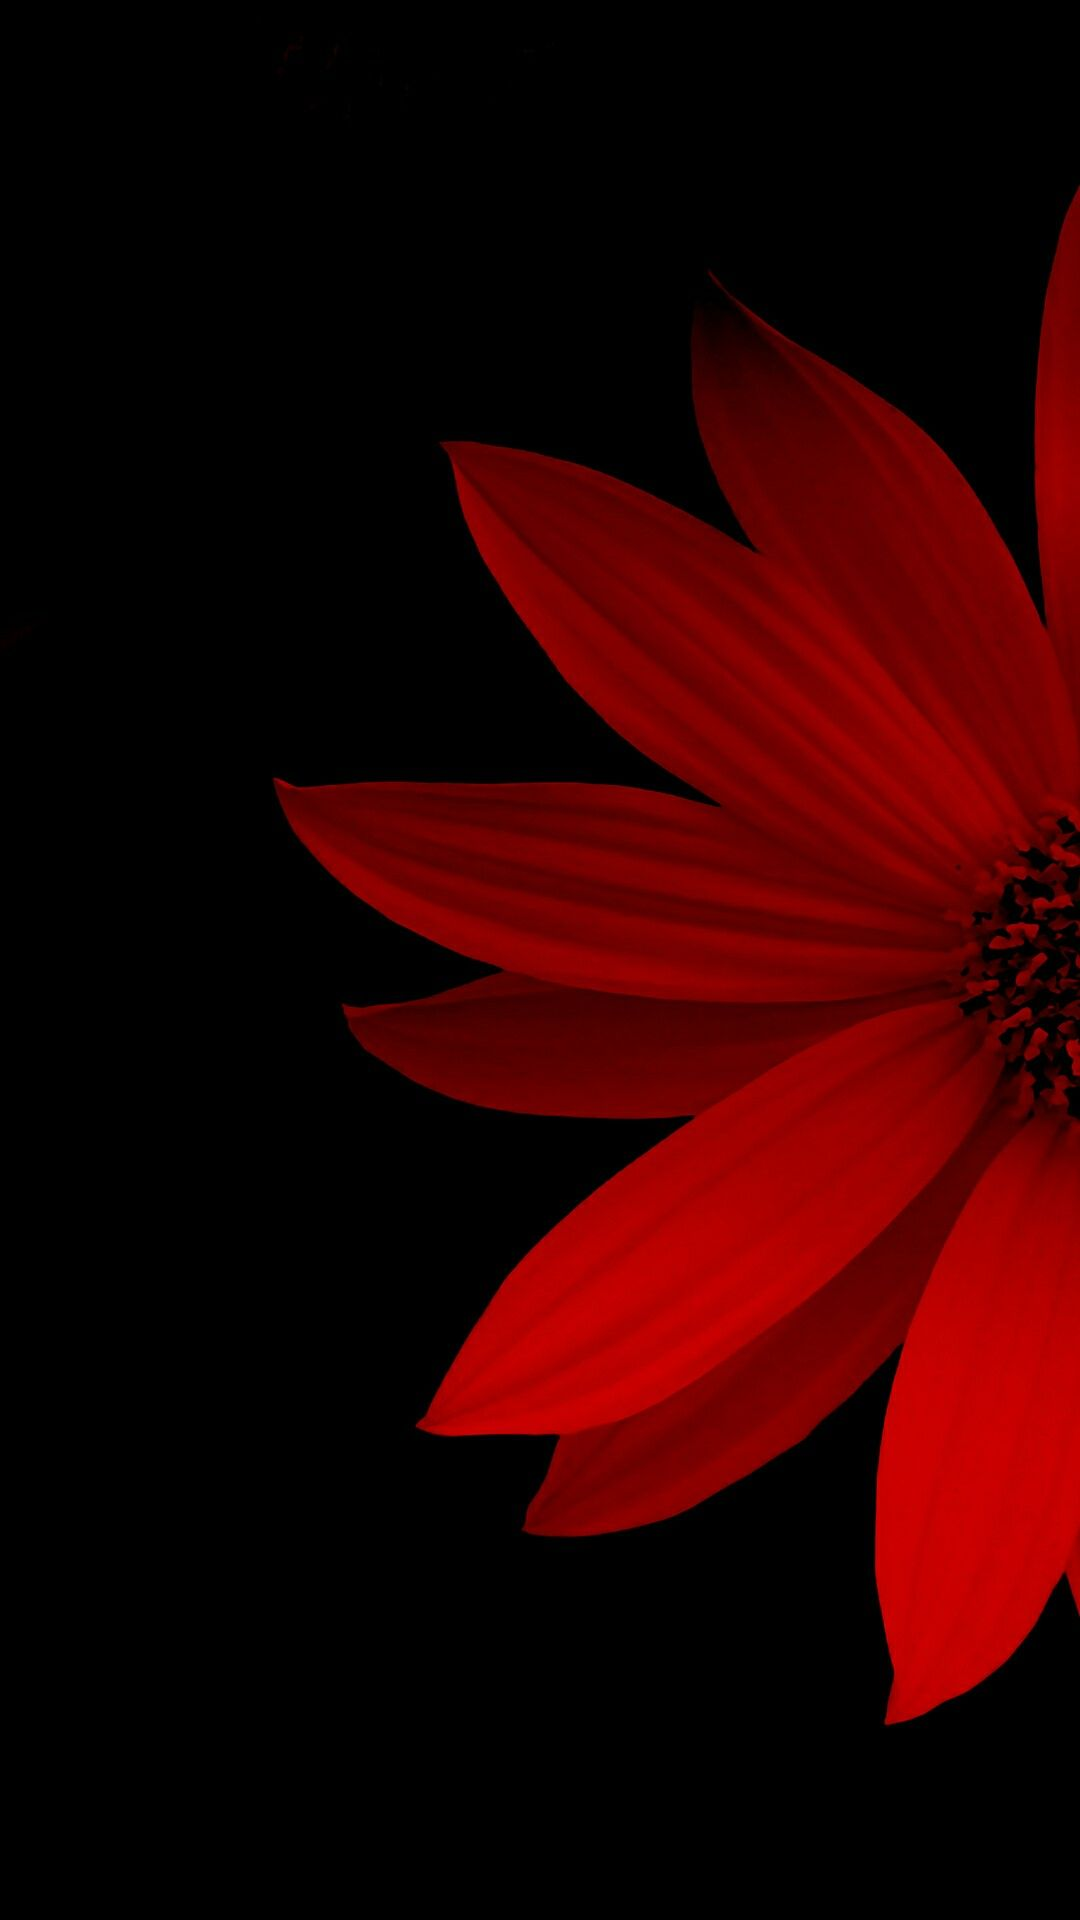 Pin By Jorie Hall On Black Theme Wallpapers Flower Wallpaper Red Wallpaper Trendy Flowers Flower theme wallpaper images